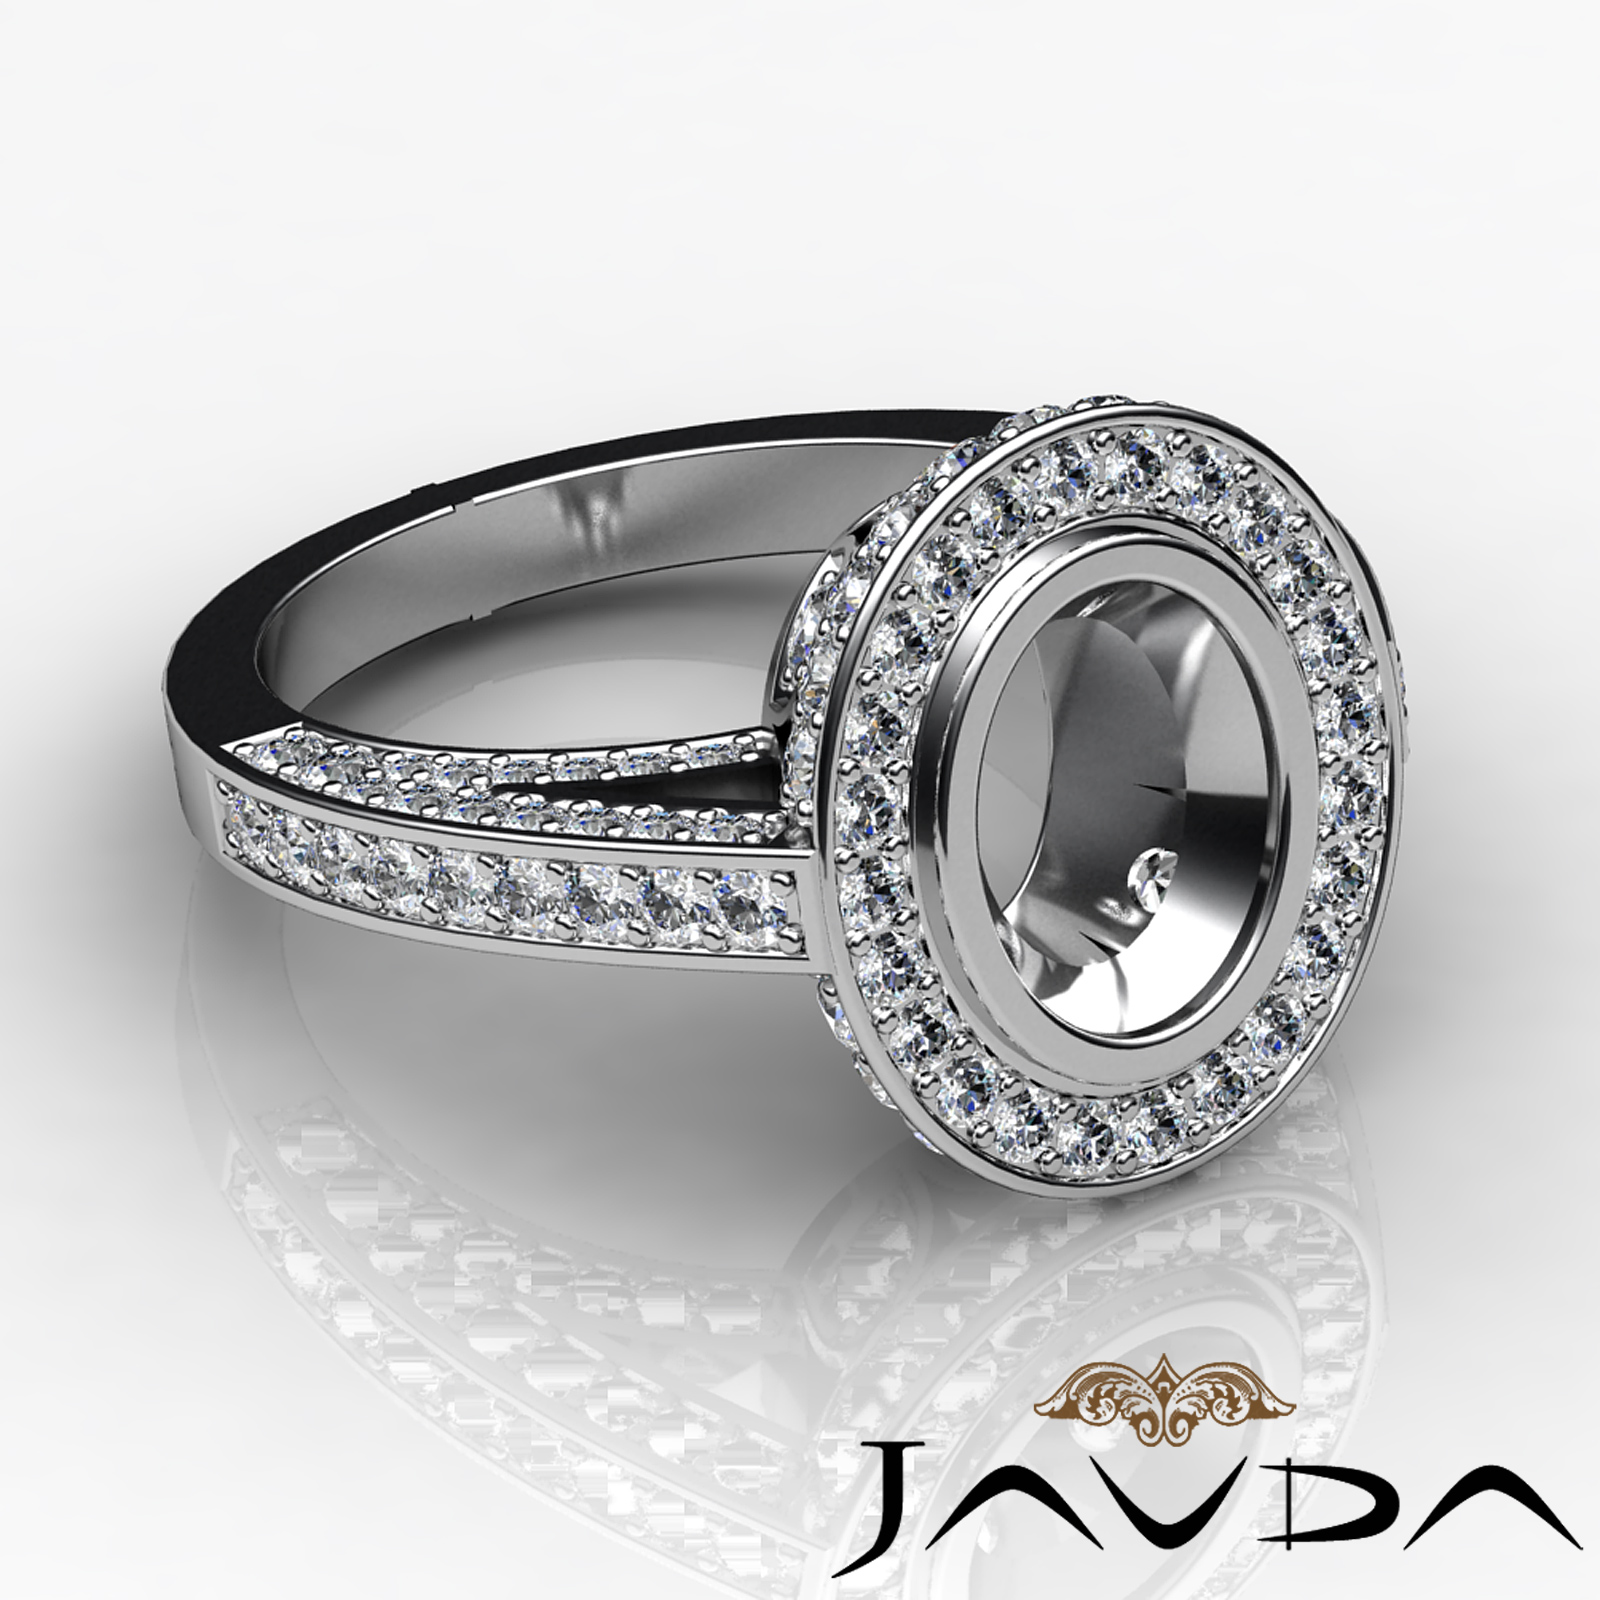 Halo Setting Diamond Engagement Oval Bezel Semi Mount Huge Ring Platinum 2Ct